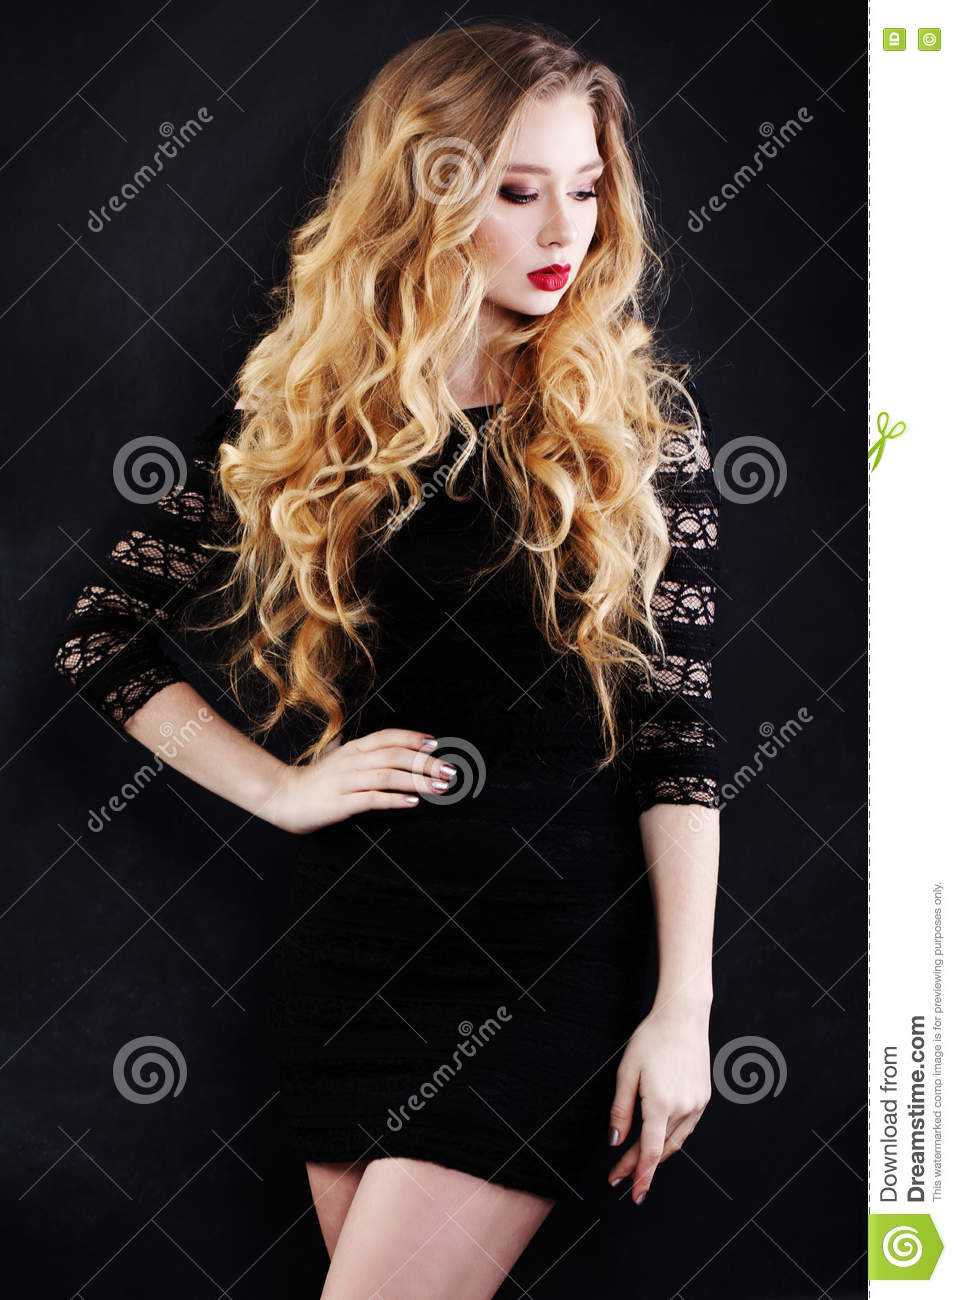 Beautiful Woman With Blonde Hair In Black Dress Stock Photo Image